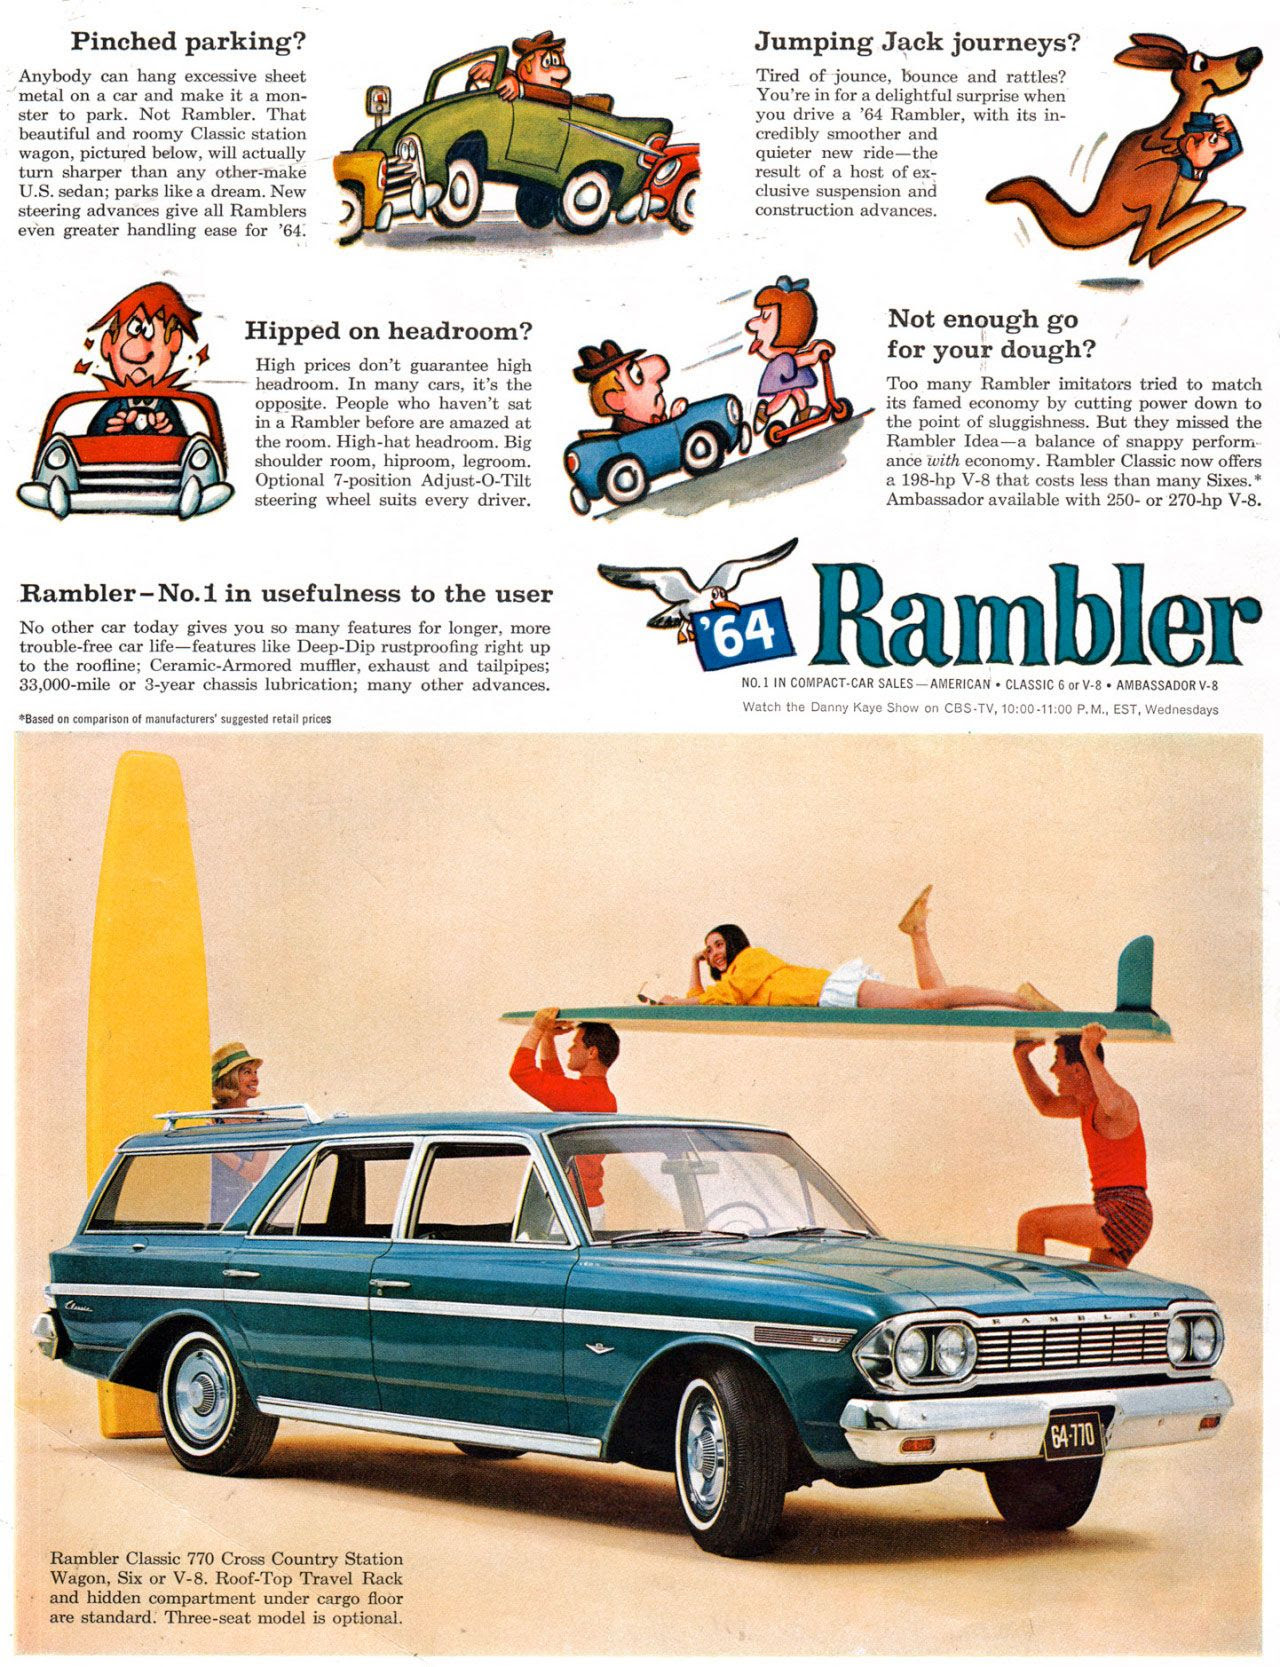 Pinched parking? Anybody can hang excessive sheet metal on a car and make it a mon-ster to park. Not Rambler. That beautiful and roomy Classic station wagon, pictumd below, will actually _ turn sharper than any other-make U.S. sedan; parks like a dream. New steering advances give all Ramblers area greater handling ease for '64:  Jumping Jack journeys? Tired of jounce, bounce and rattles? You're in for a delightful surprise when you drive a '64 Rambler, with its in-credibly smoother and quieter new ride—the result of a host of ex-clusive suspension and construction advances.  Hipped on headroom? High prices don't guarantee high — headroom. In many cars, it's the opposite. People who haven't sat in a Rambler before are amazed at the room. High-hat headroom. Big shoulder room, hiproom, legroom. Optional 7-position Adjust-O-Tilt steering wheel suits every driver.  Rambler-No.1 in usefulness to the user No other car today gives you so many features for longer, more trouble-free car life—features like Deep-Dip rustproofing right up to the roofline; Ceramic-Armored muffler, exhaust and tailpipes; 33,000-mile or 3-year chassis lubrication; many other advances.  *Based on comparison of manufacturers' suuested retail prices  .1111111P Not enough go for your dough? Too many Rambler imitators tried to match its famed economy by cutting power down to the point of sluggishness. But they missed the Rambler Idea—a balance of snappy perform-arias ?with economy. Rambler Classic now offers a 198-hp V-8 that costs less than many Sixes.' Ambassador available with 250- or 270-hp V-8.  Rambler  NO.1 IN COMPACT.CAR SALES—AMERICAN • CLASSIC 6 or V-8 • AMBASSADOR V-8 Watch the Danny Kaye Show on CBS-TV, 10:00-11:00 P.M., EST, Wednesdays  Rambler Classic 770 Cross Country Station Wagon, Six or V-8. Roof-Top Travel Rack and hidden compartment under cargo floor are standard. Three-seat model is optional.